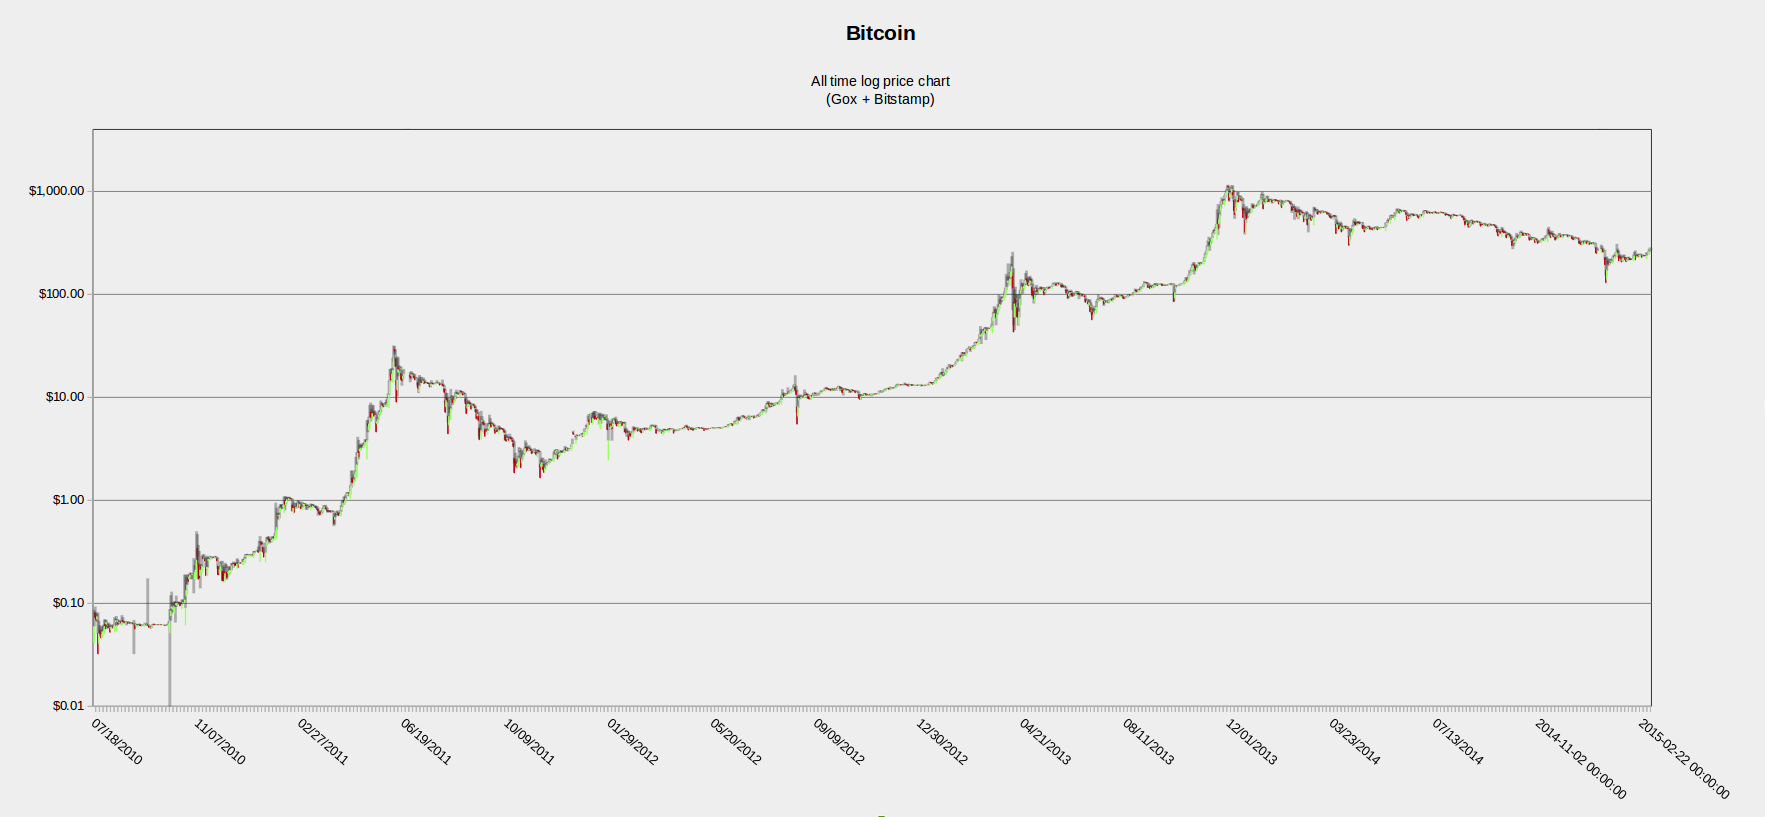 bitcoin price graph all time